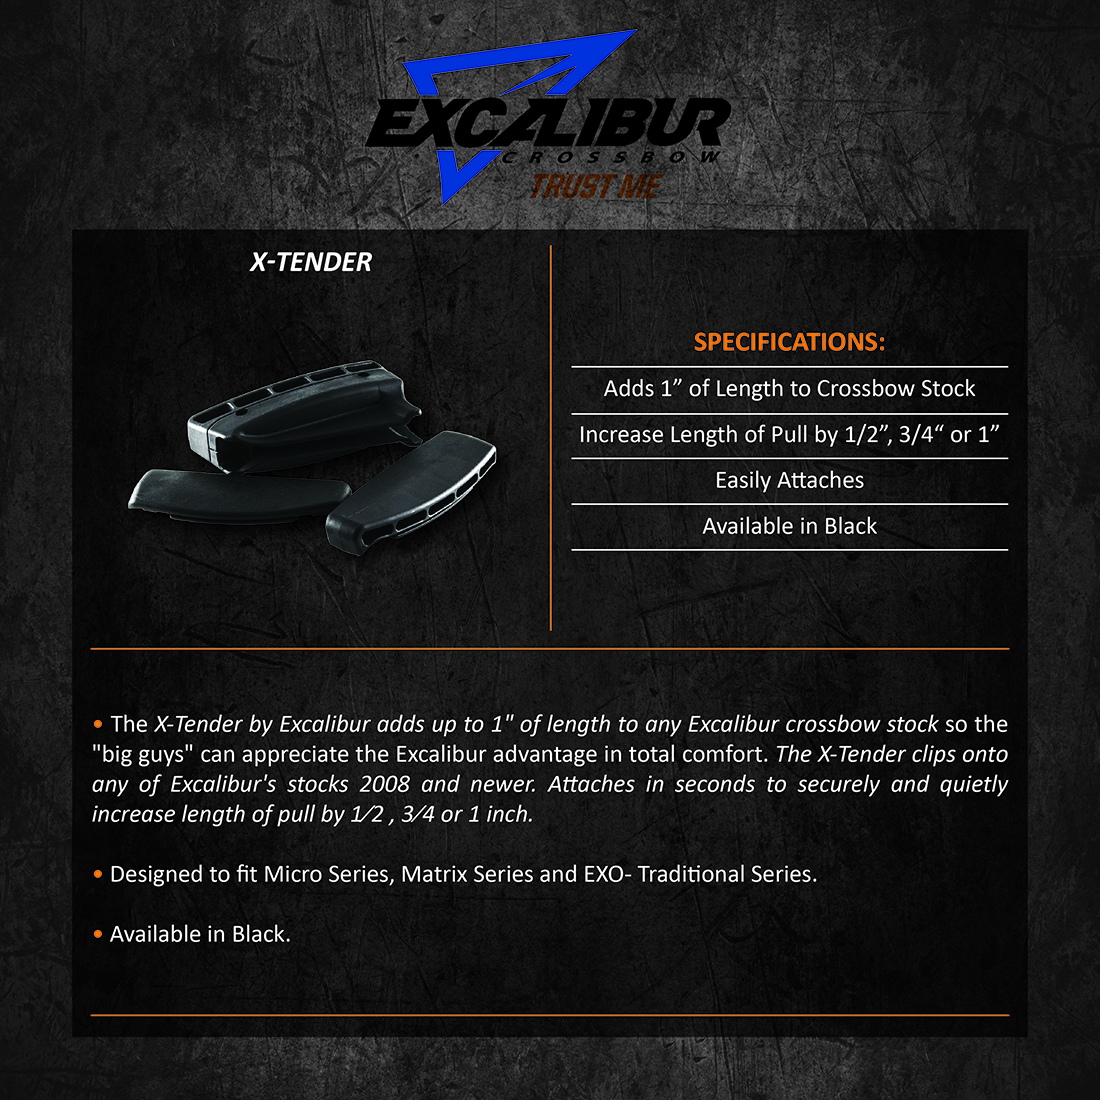 Excalibur_X-Tender_Black_Product_Description